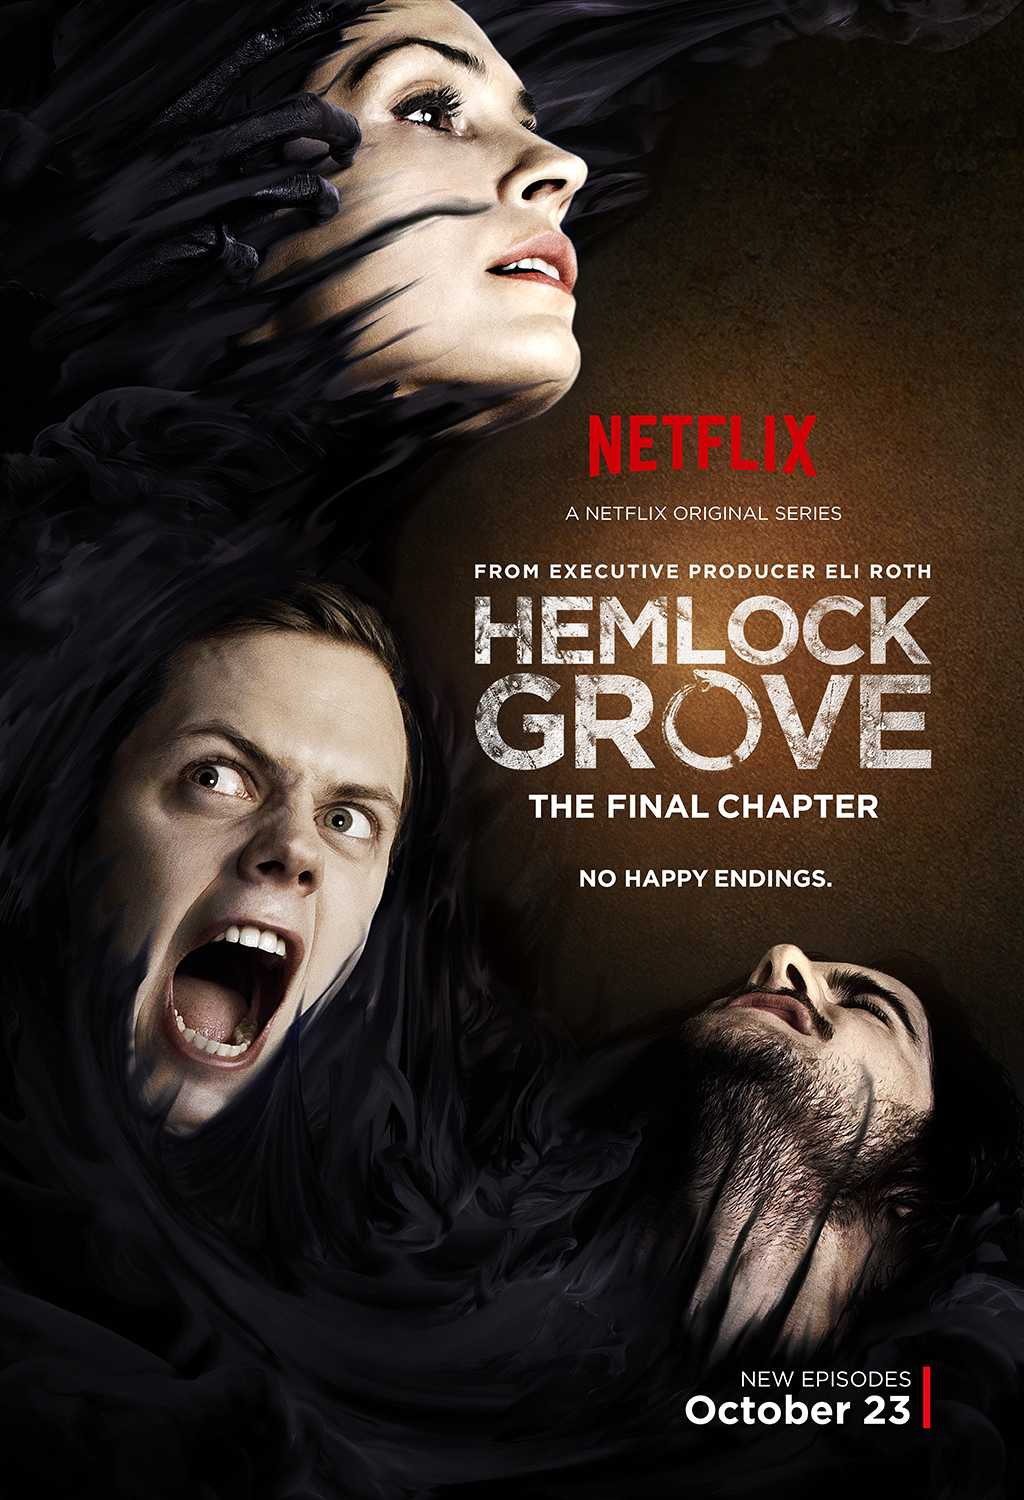 Hemlock Grove Season 3 (Ep. 1-5 Review) | hemlock grove